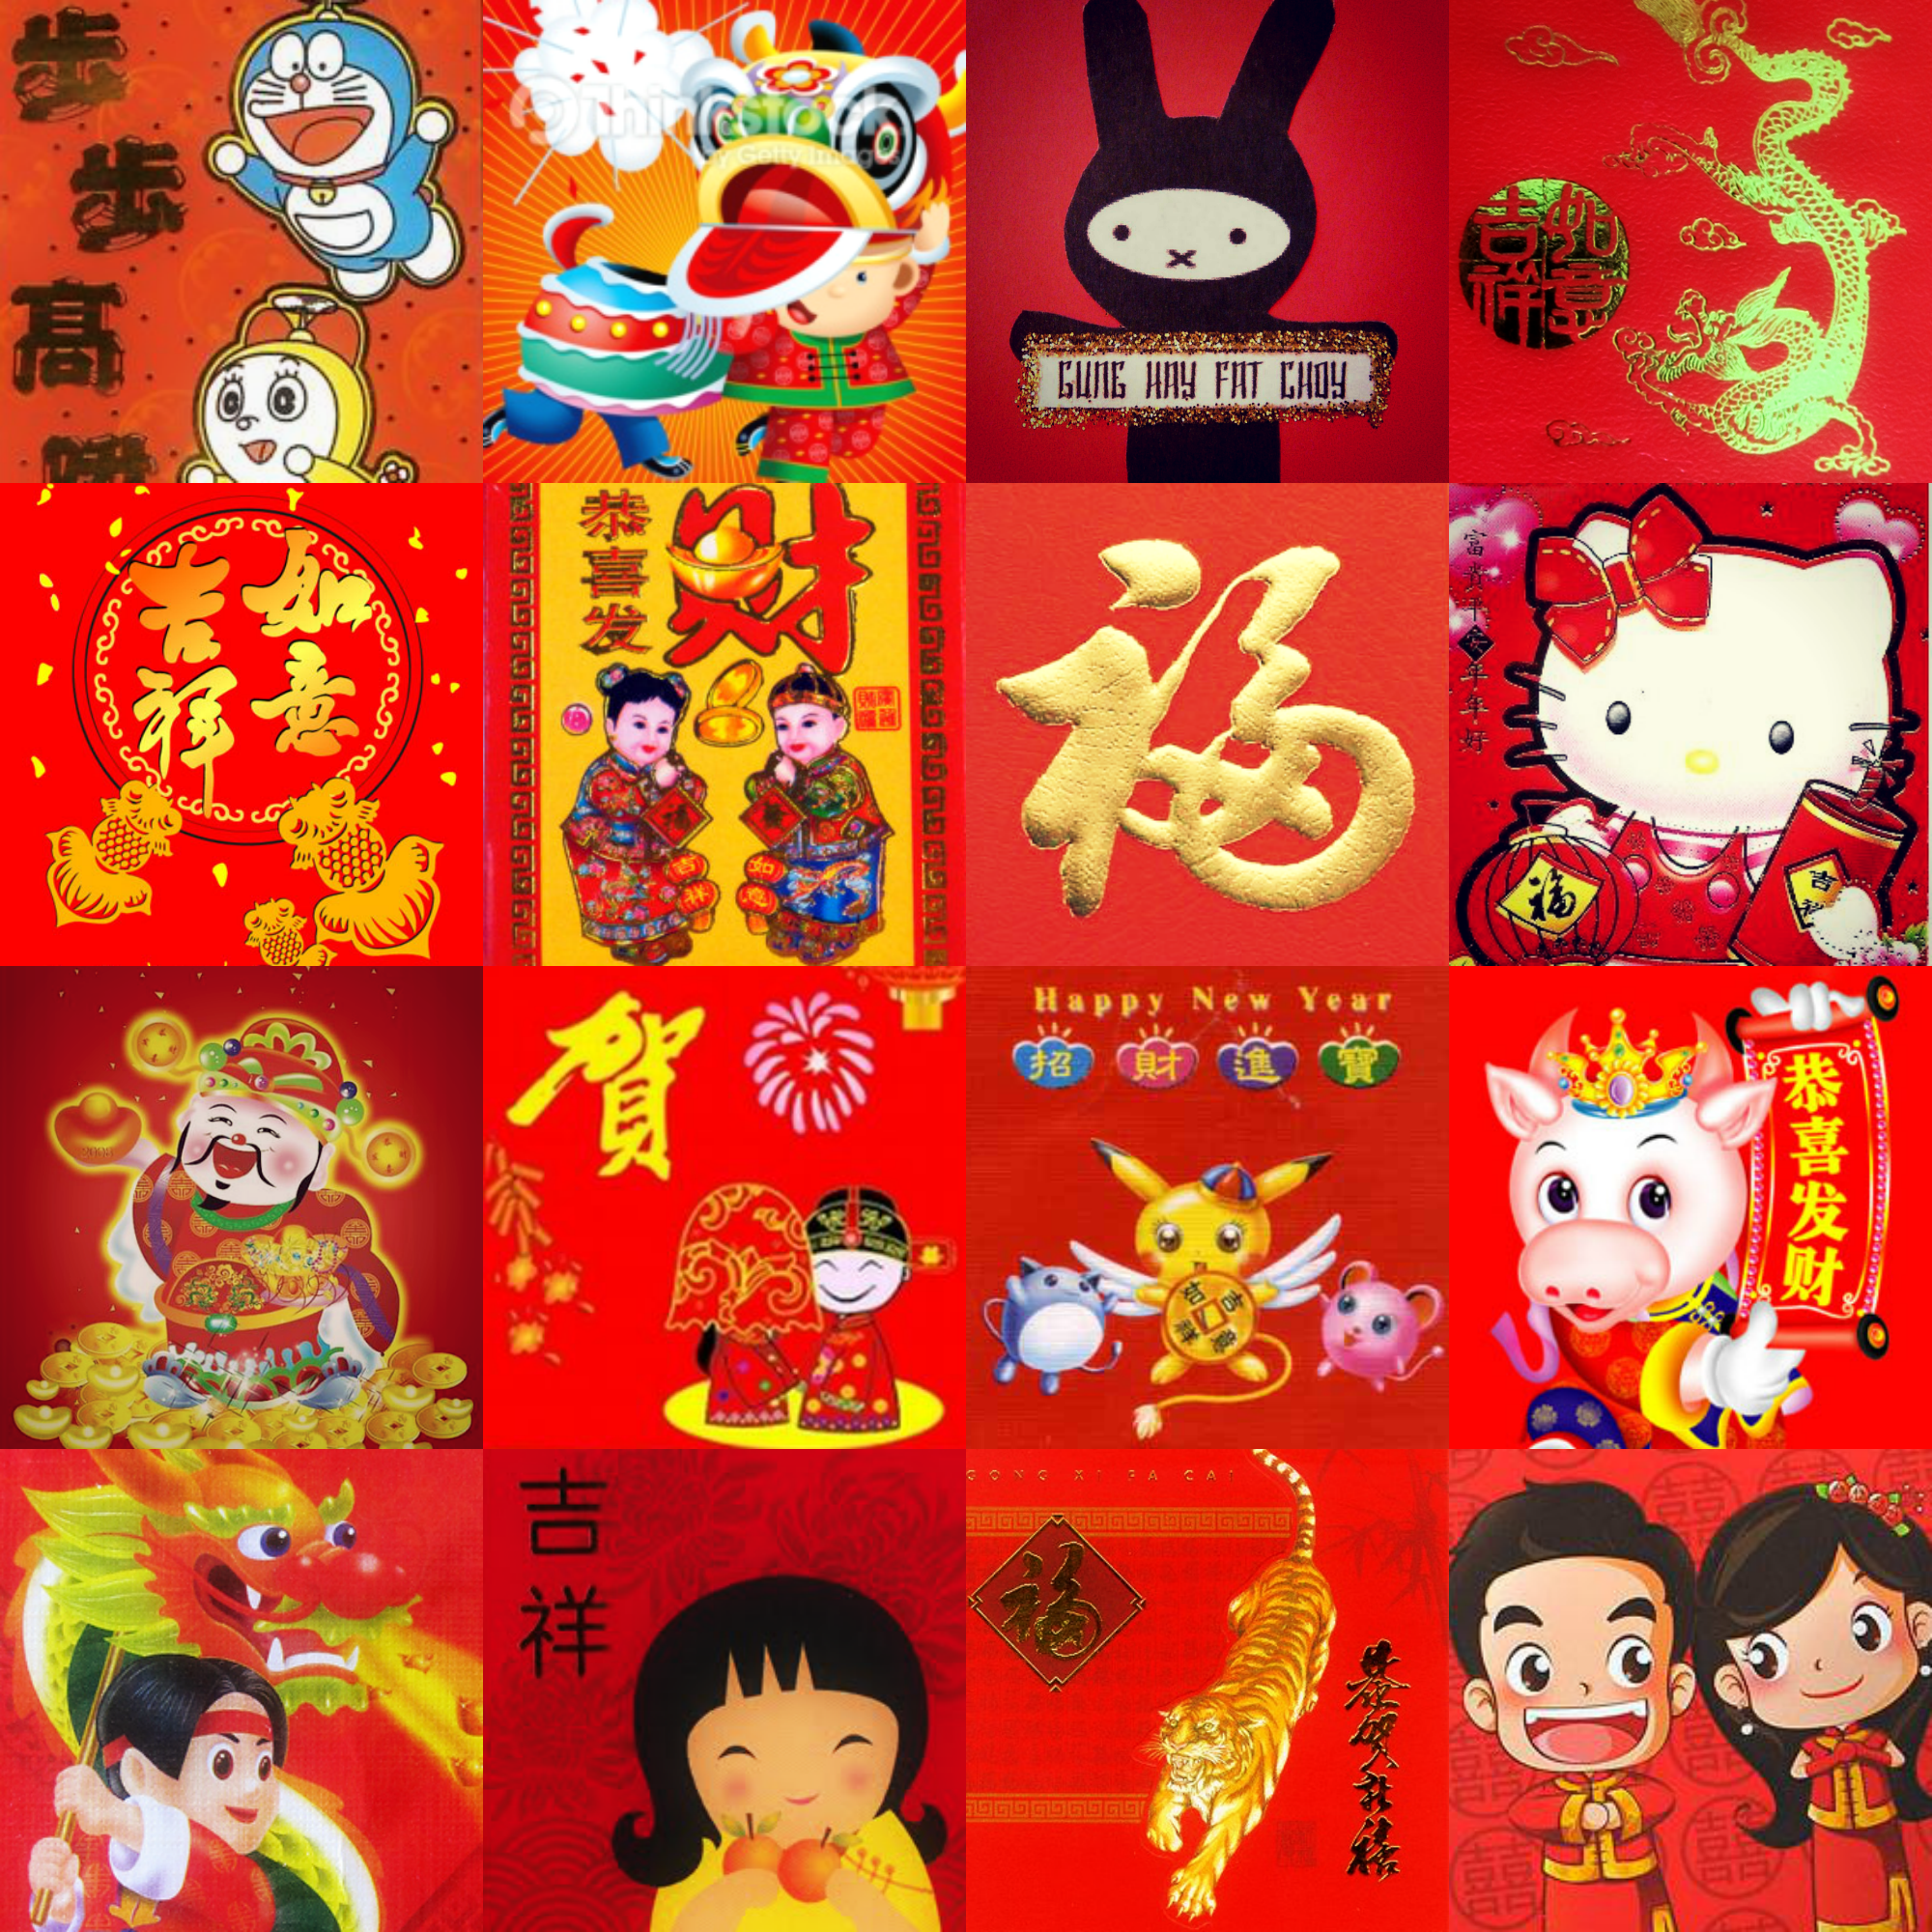 Merry Chinese New Year Red Envelopes Holiday!